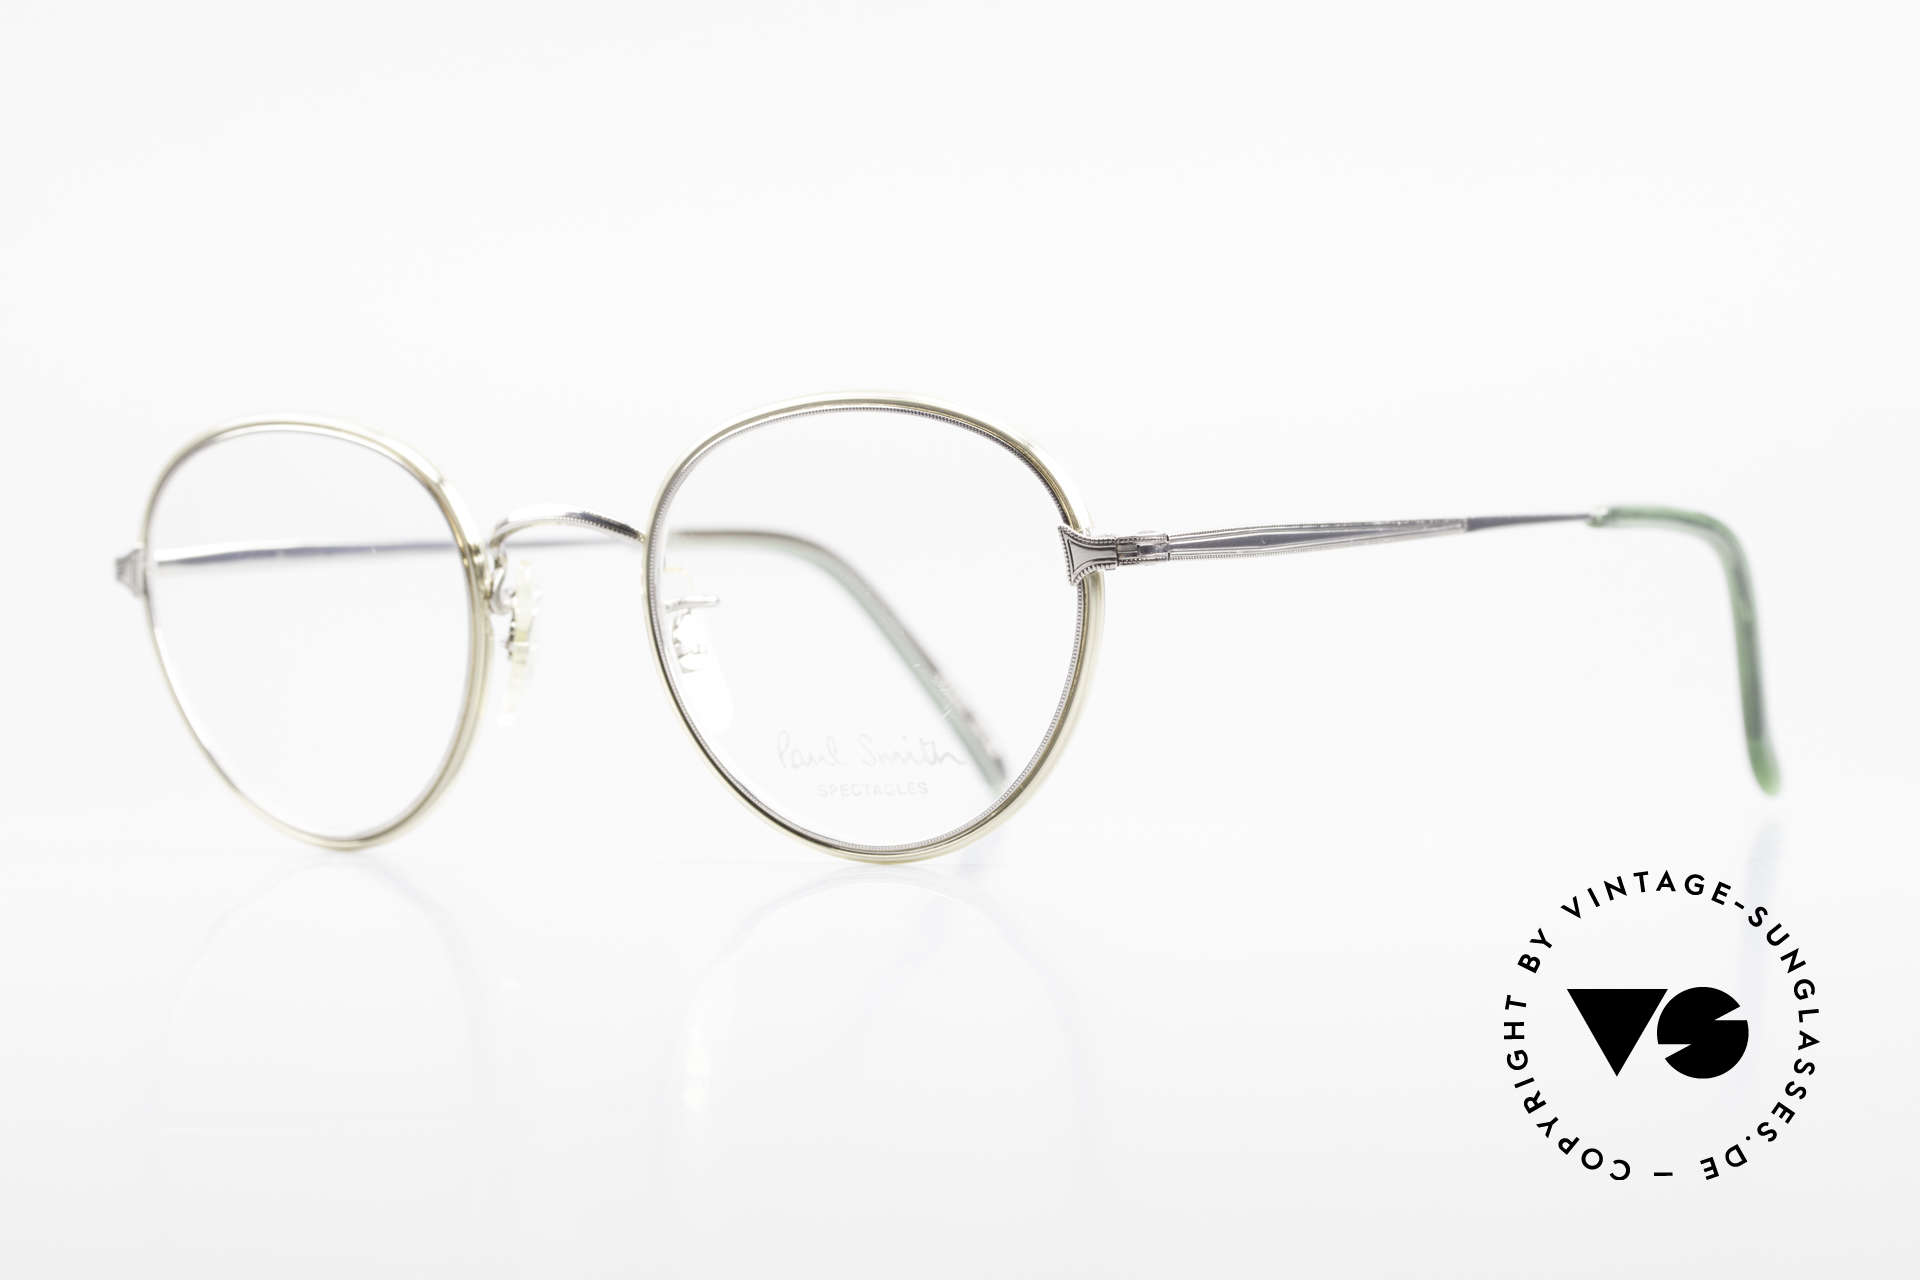 Paul Smith PSR109 80s Panto Frame Old Original, this rare OLD Paul Smith Original is still 'made in Japan', Made for Men